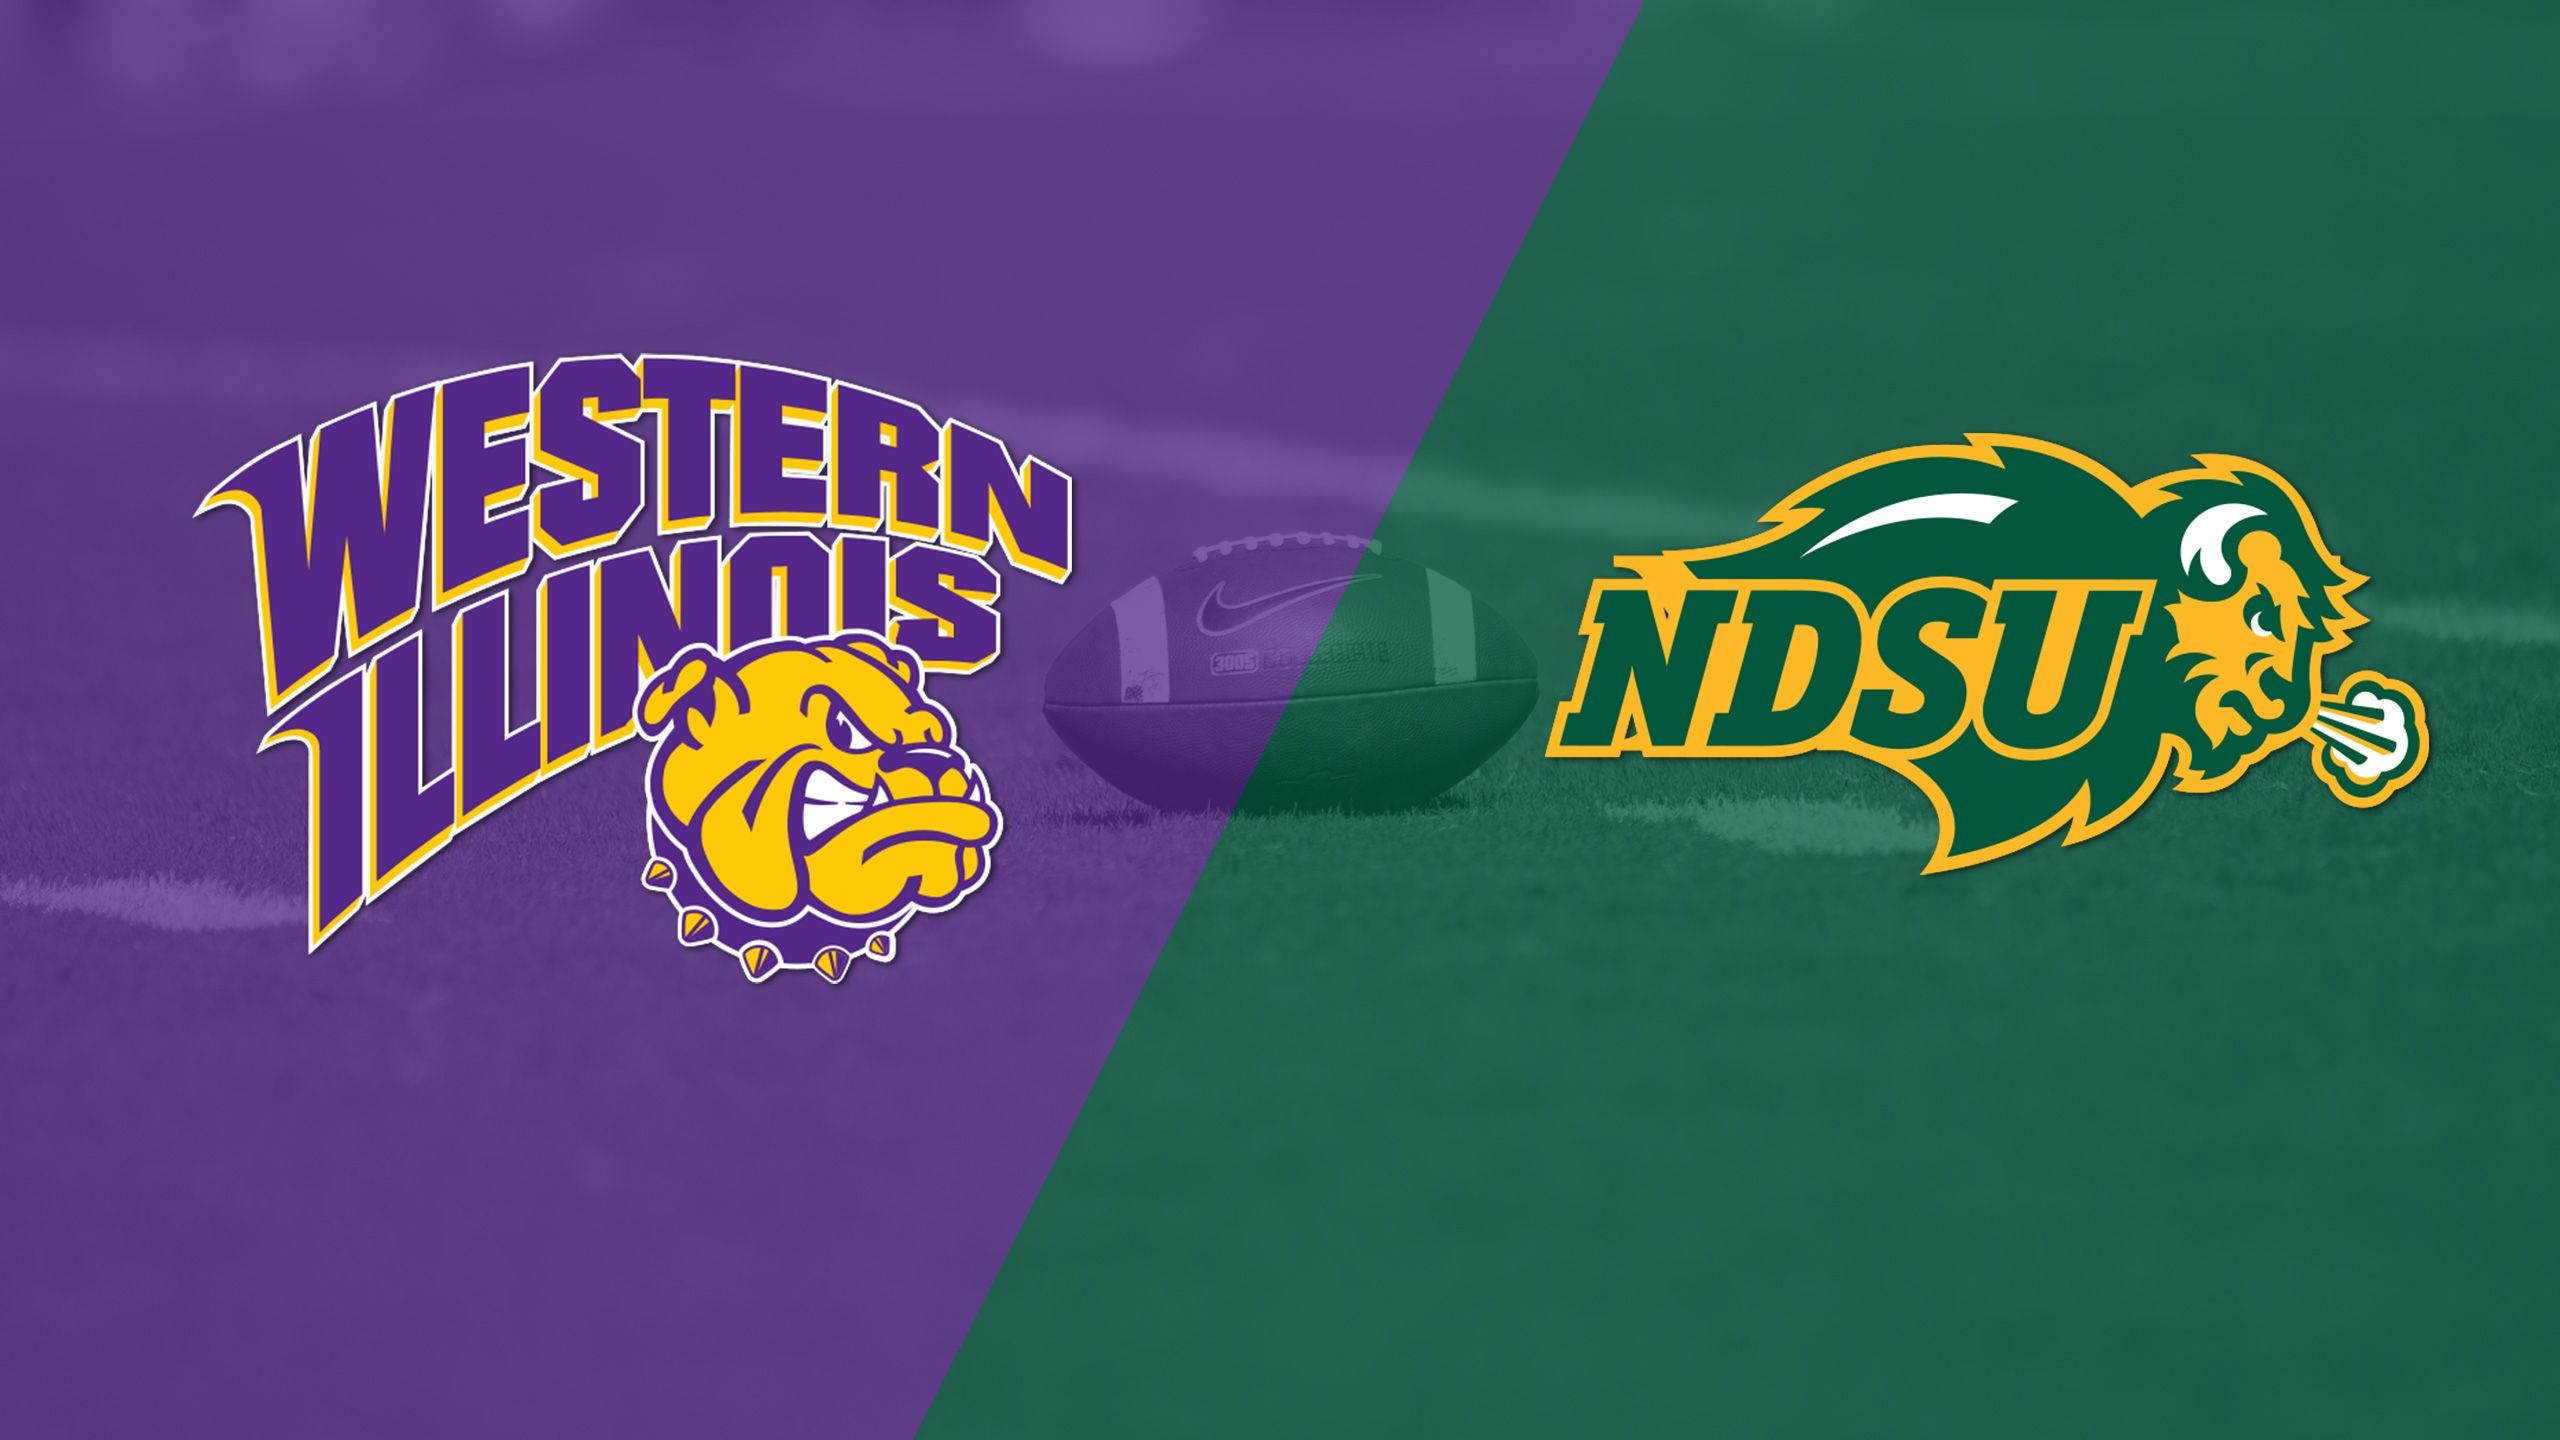 Western Illinois vs. North Dakota State (Football)